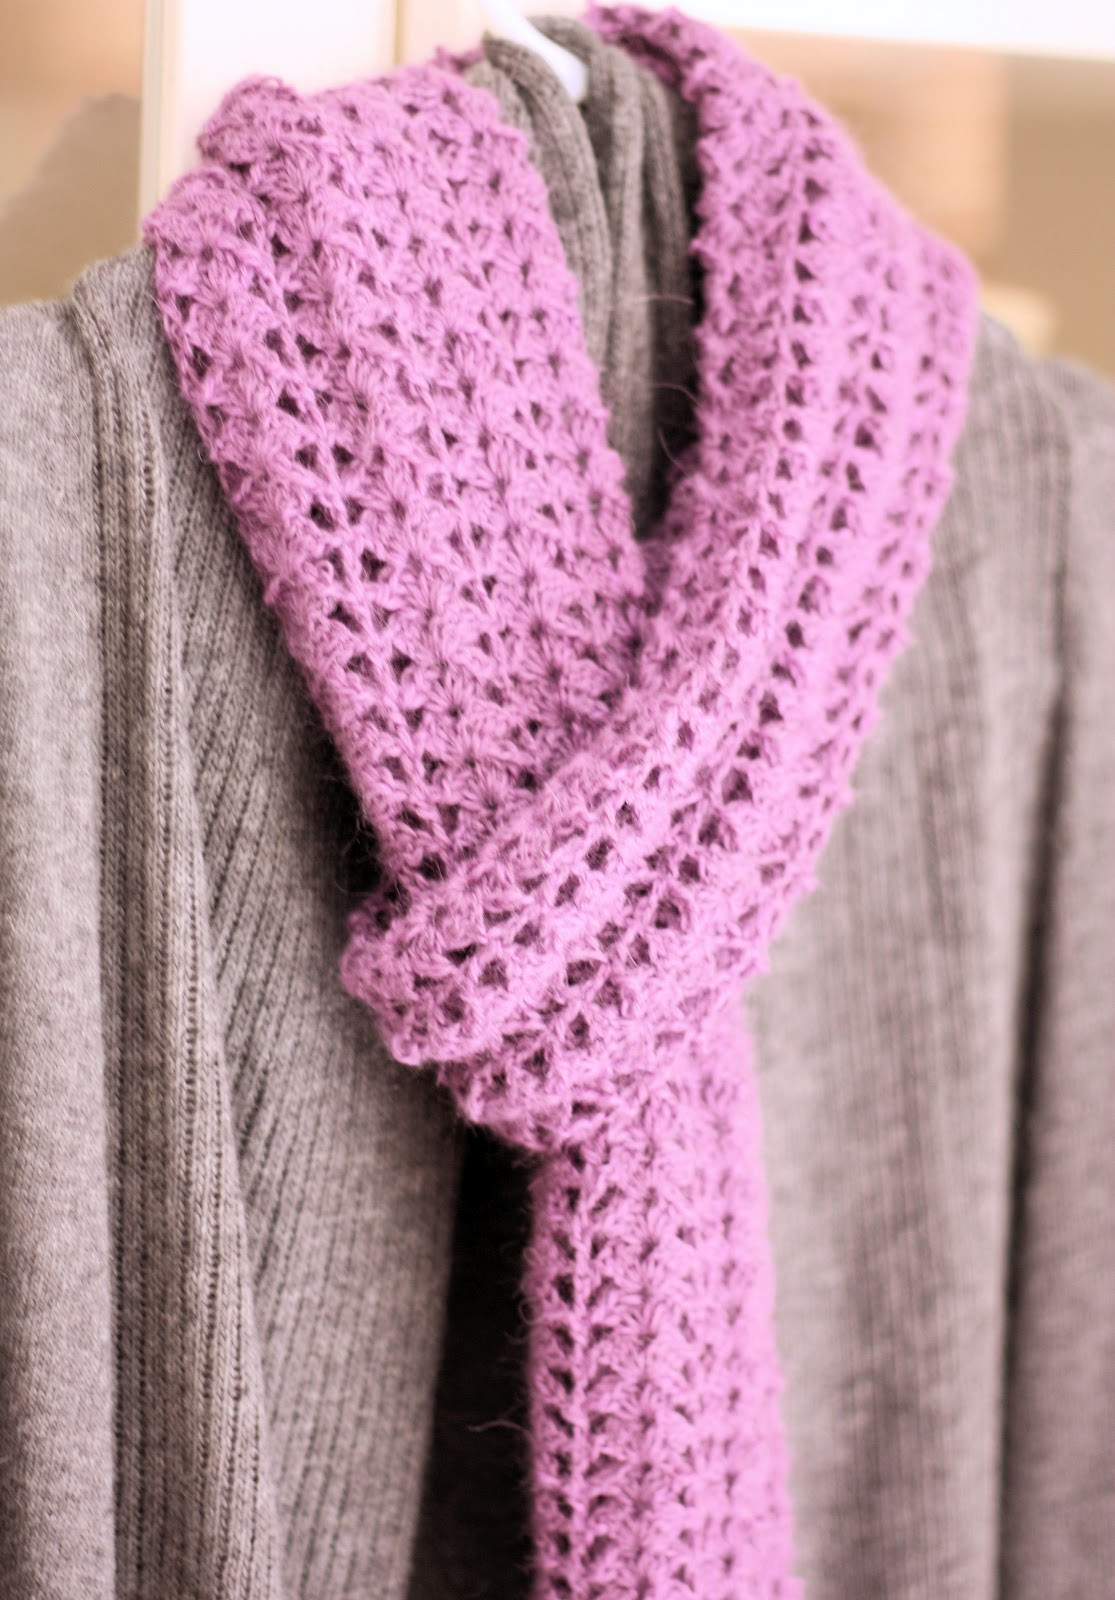 Inspirational Free Crochet Scarf Patterns for Beginners Crochet and Knit Free Crochet Shawl Patterns for Beginners Of Brilliant 44 Images Free Crochet Shawl Patterns for Beginners